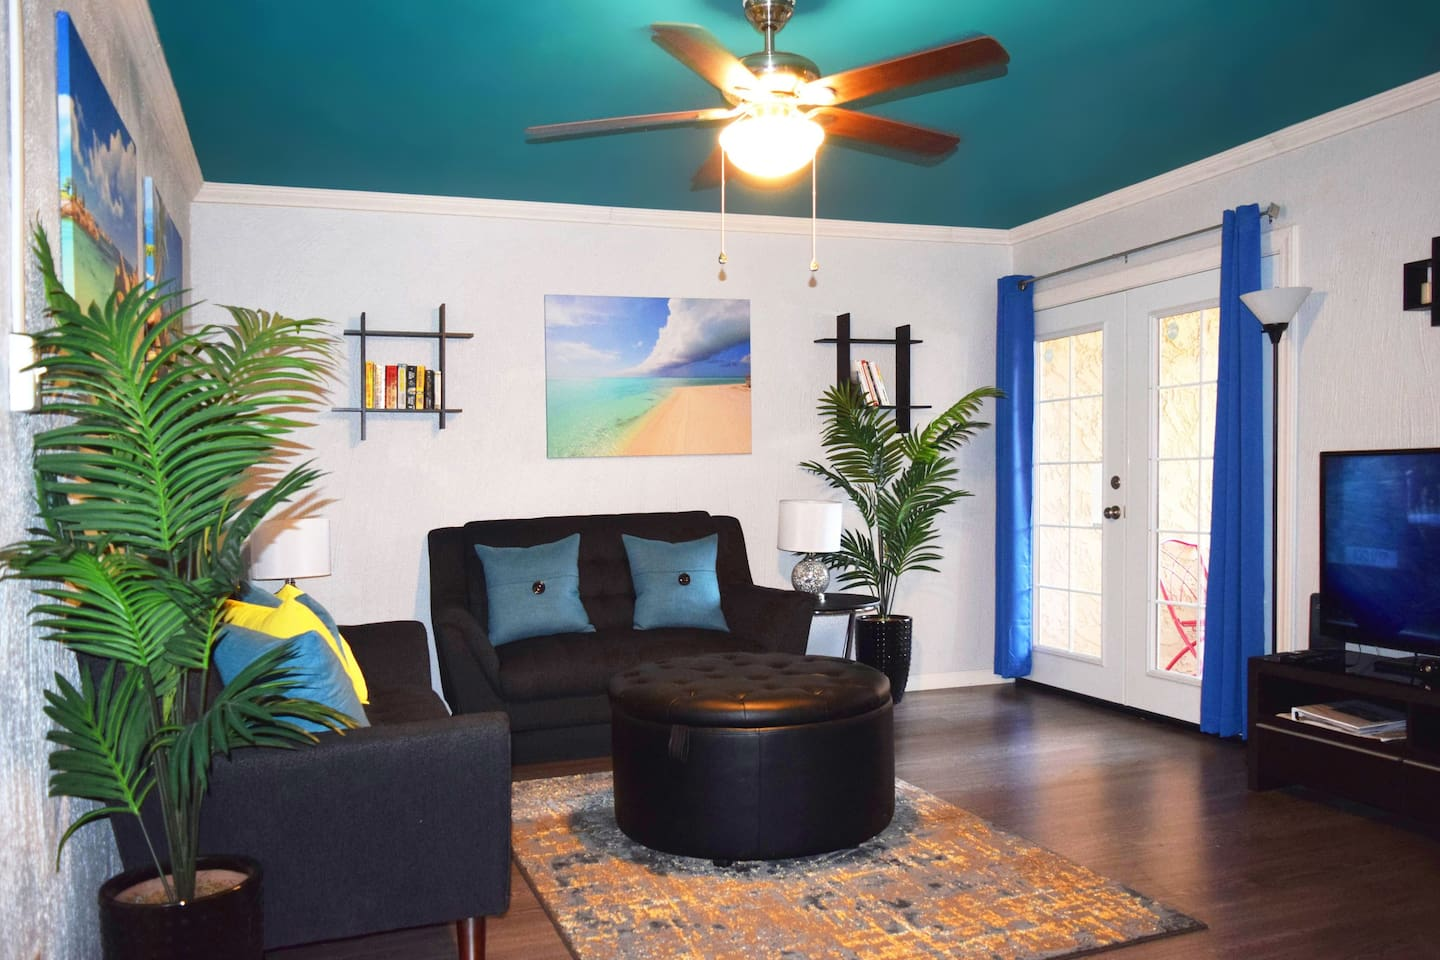 Lounge in the tropical themed living room and a private patio near the pool area.